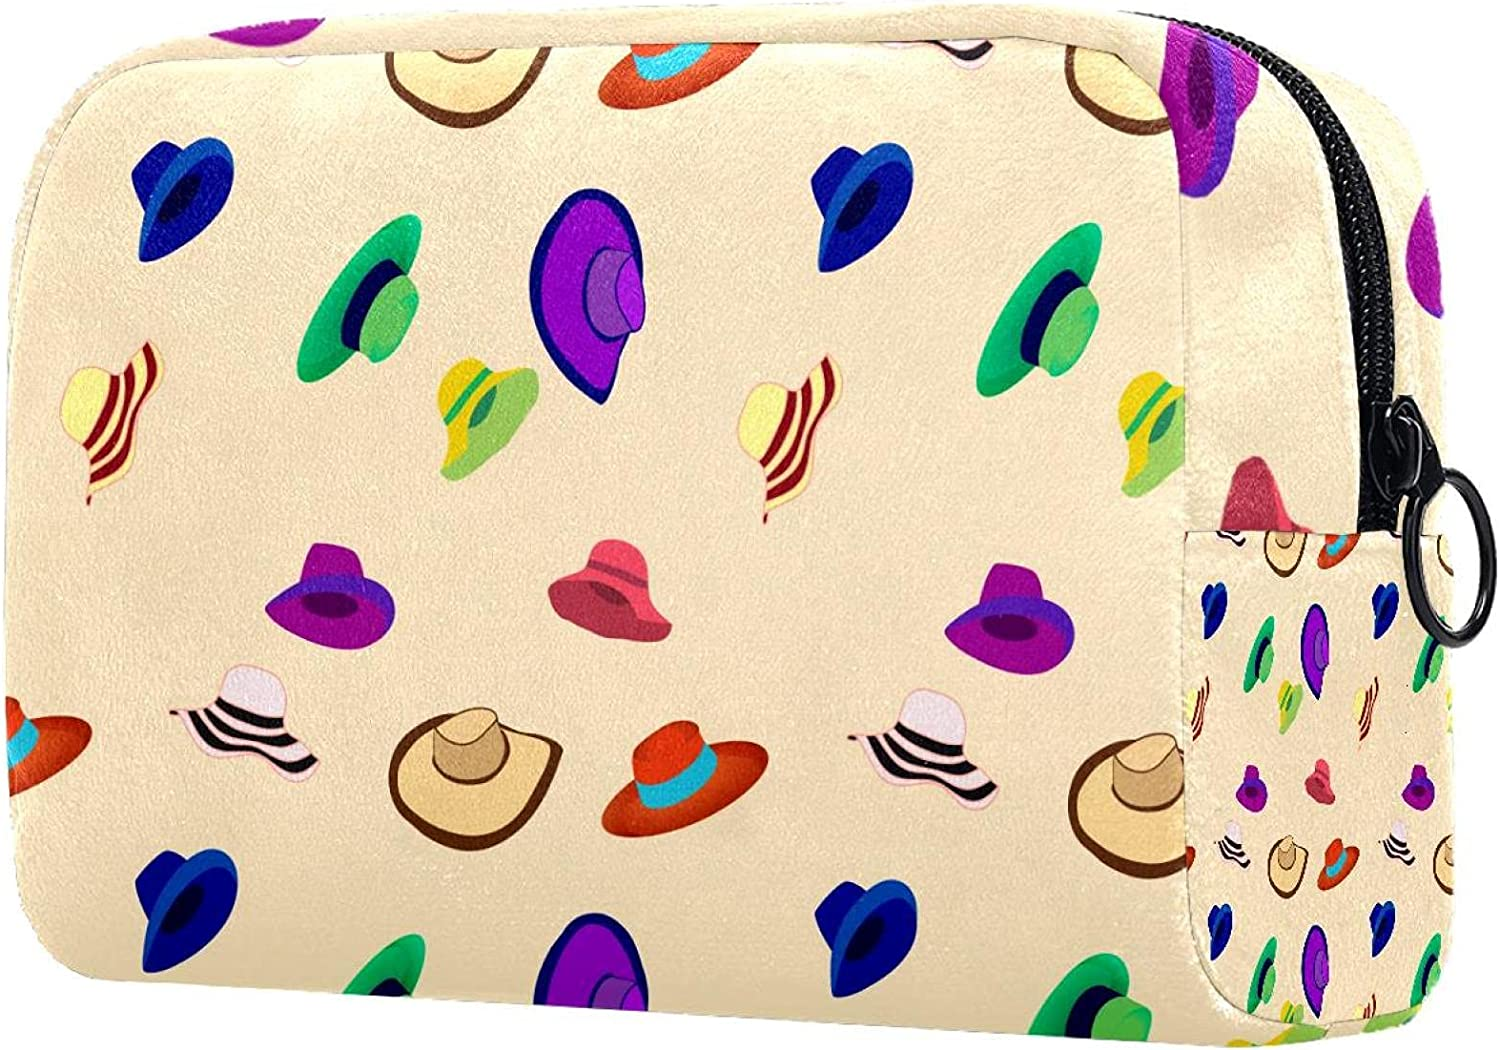 Max 85% OFF Woman Hats Pattern Travel Makeup Cosmetic Bag Large C specialty shop